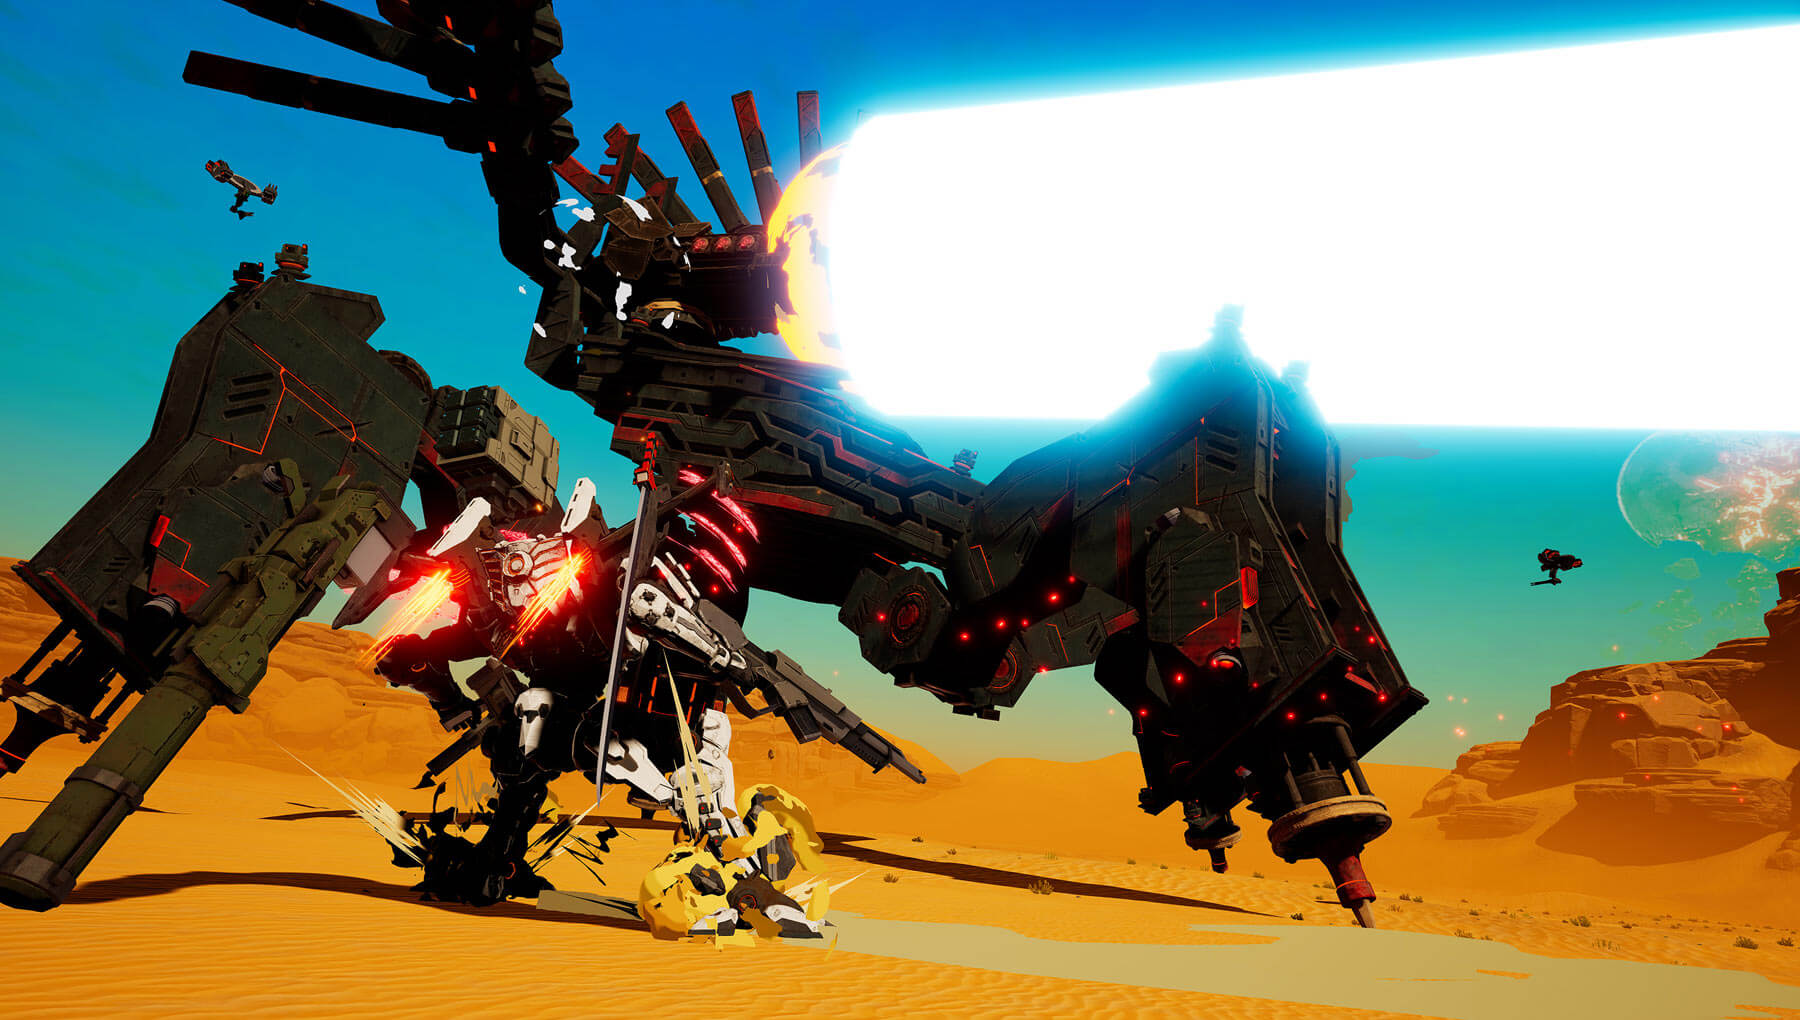 Psa Daemon X Machina S Switch Demo Is Being Pulled Soon